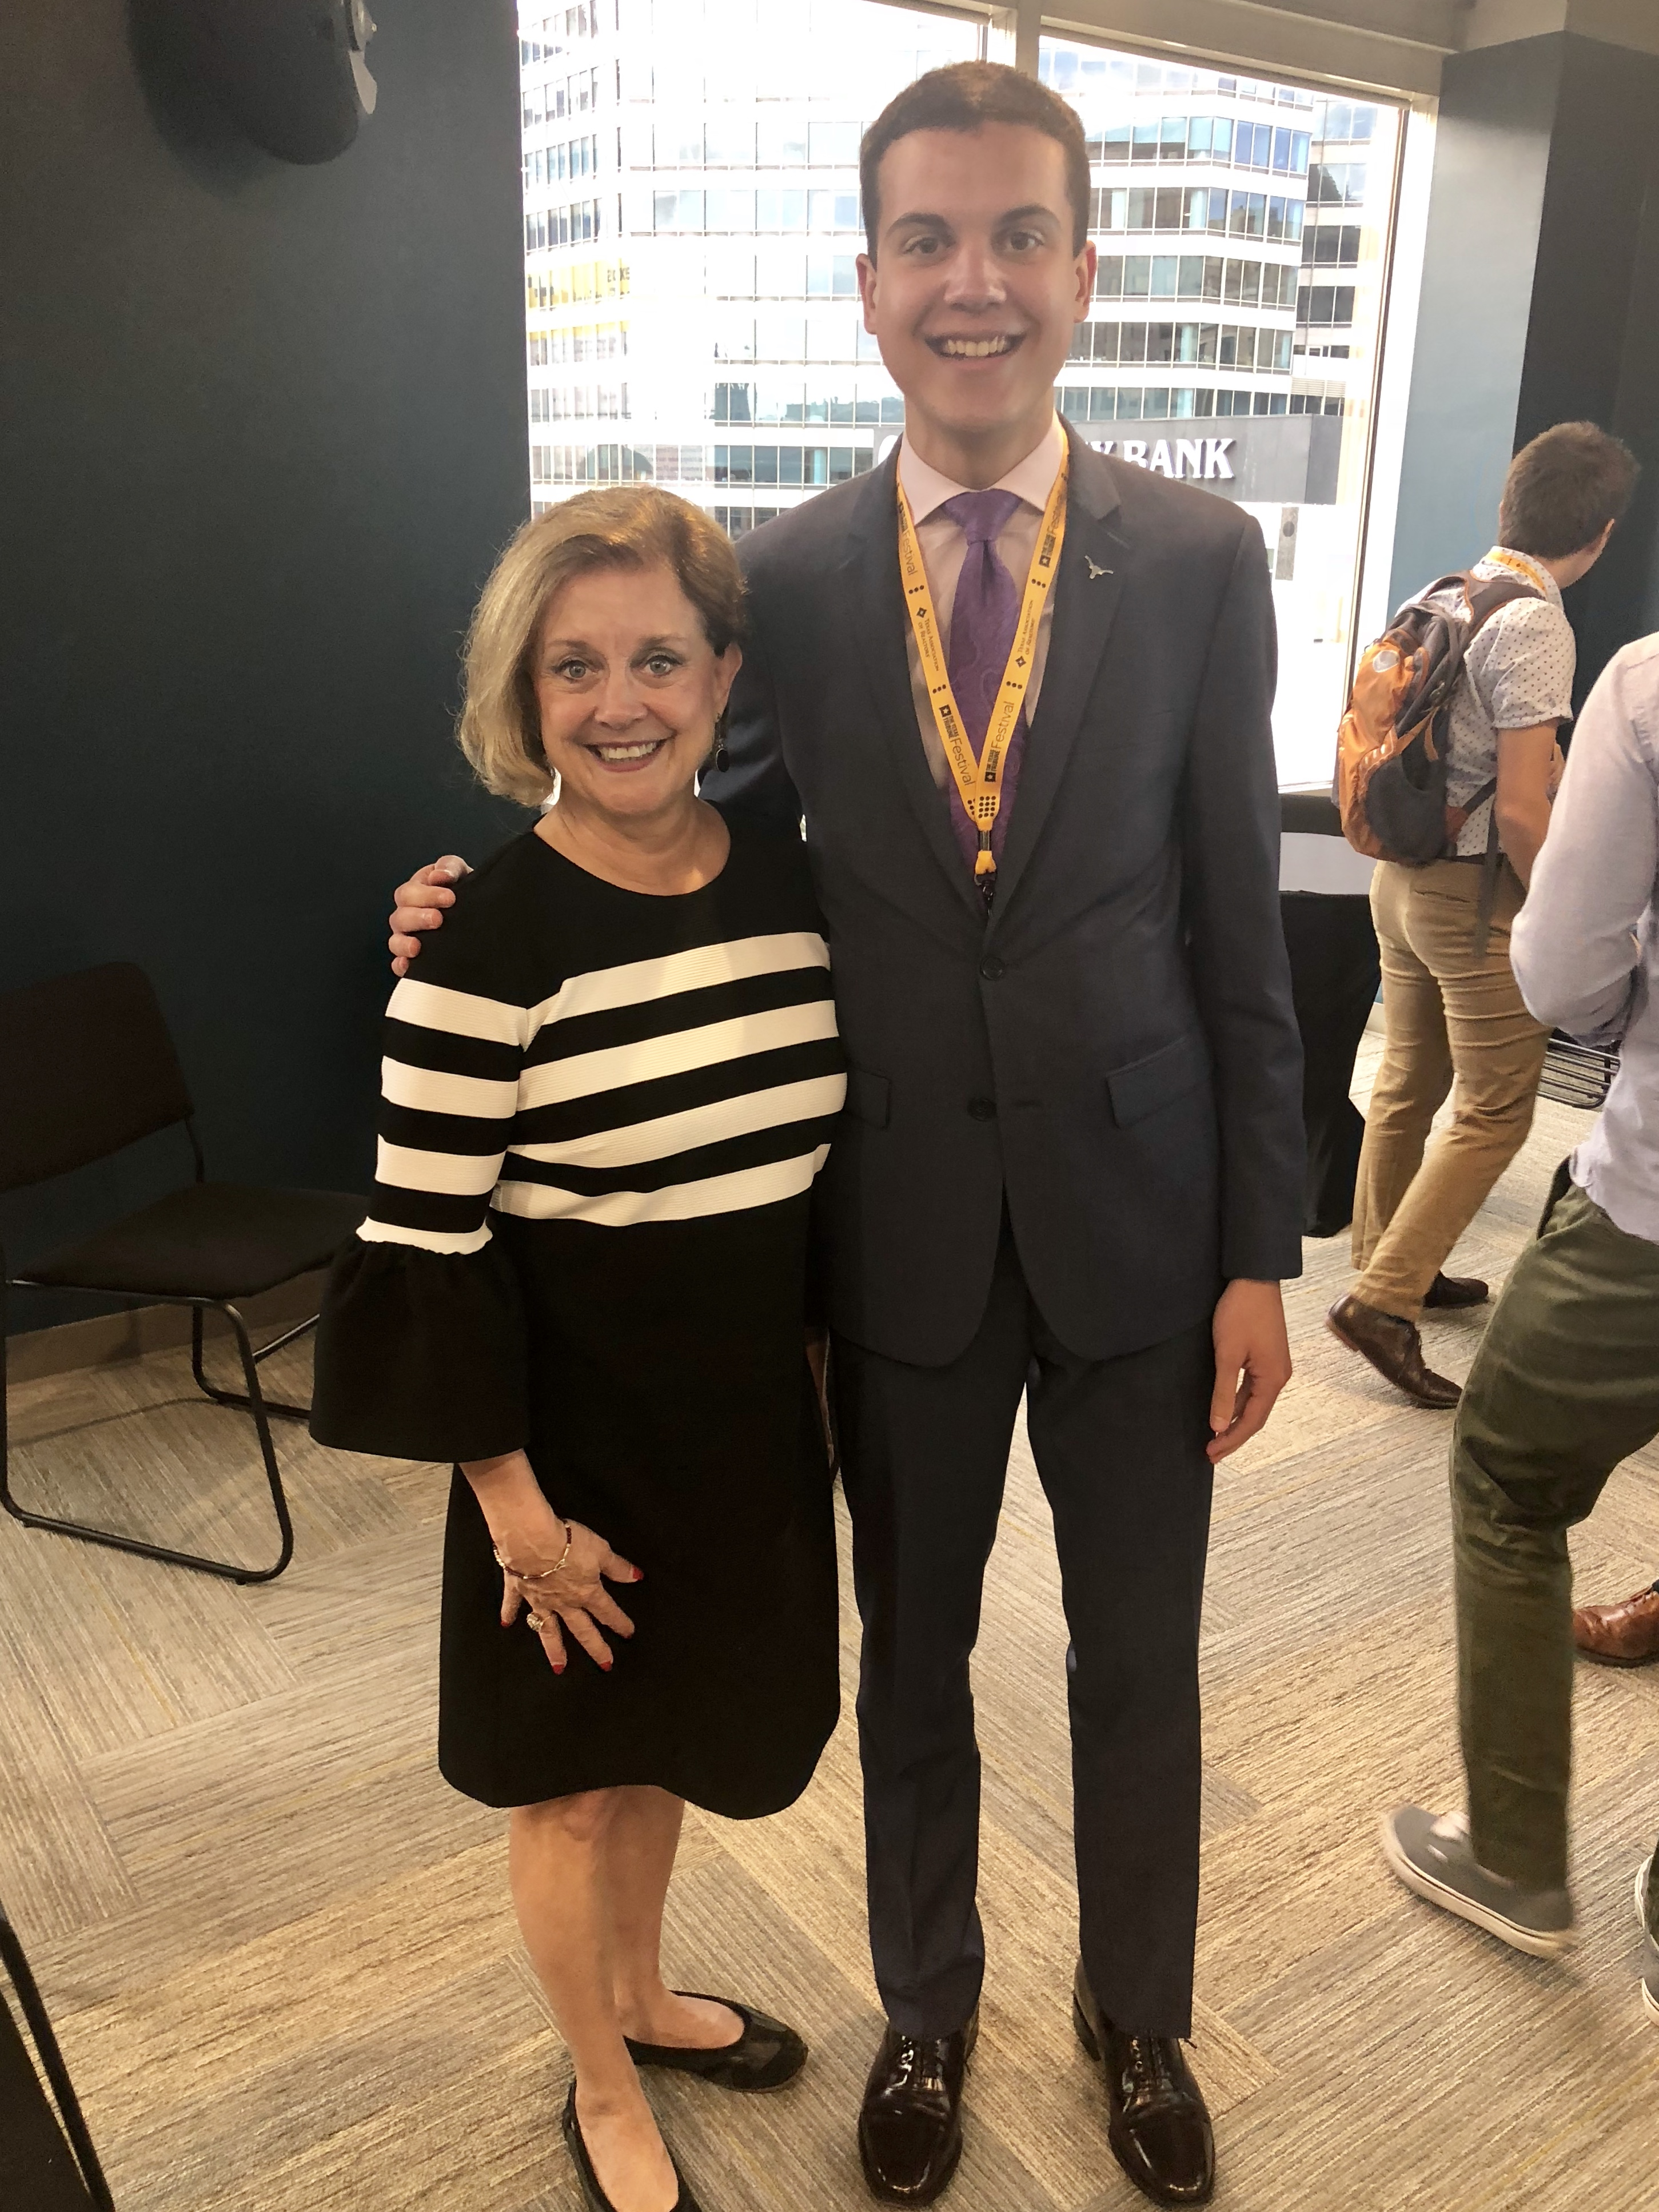 Travis County Clerk and LBJ alum Dana DeBeauvoir with LBJ MPAff student Alex Meed at the 2018 Texas Tribune Festival.